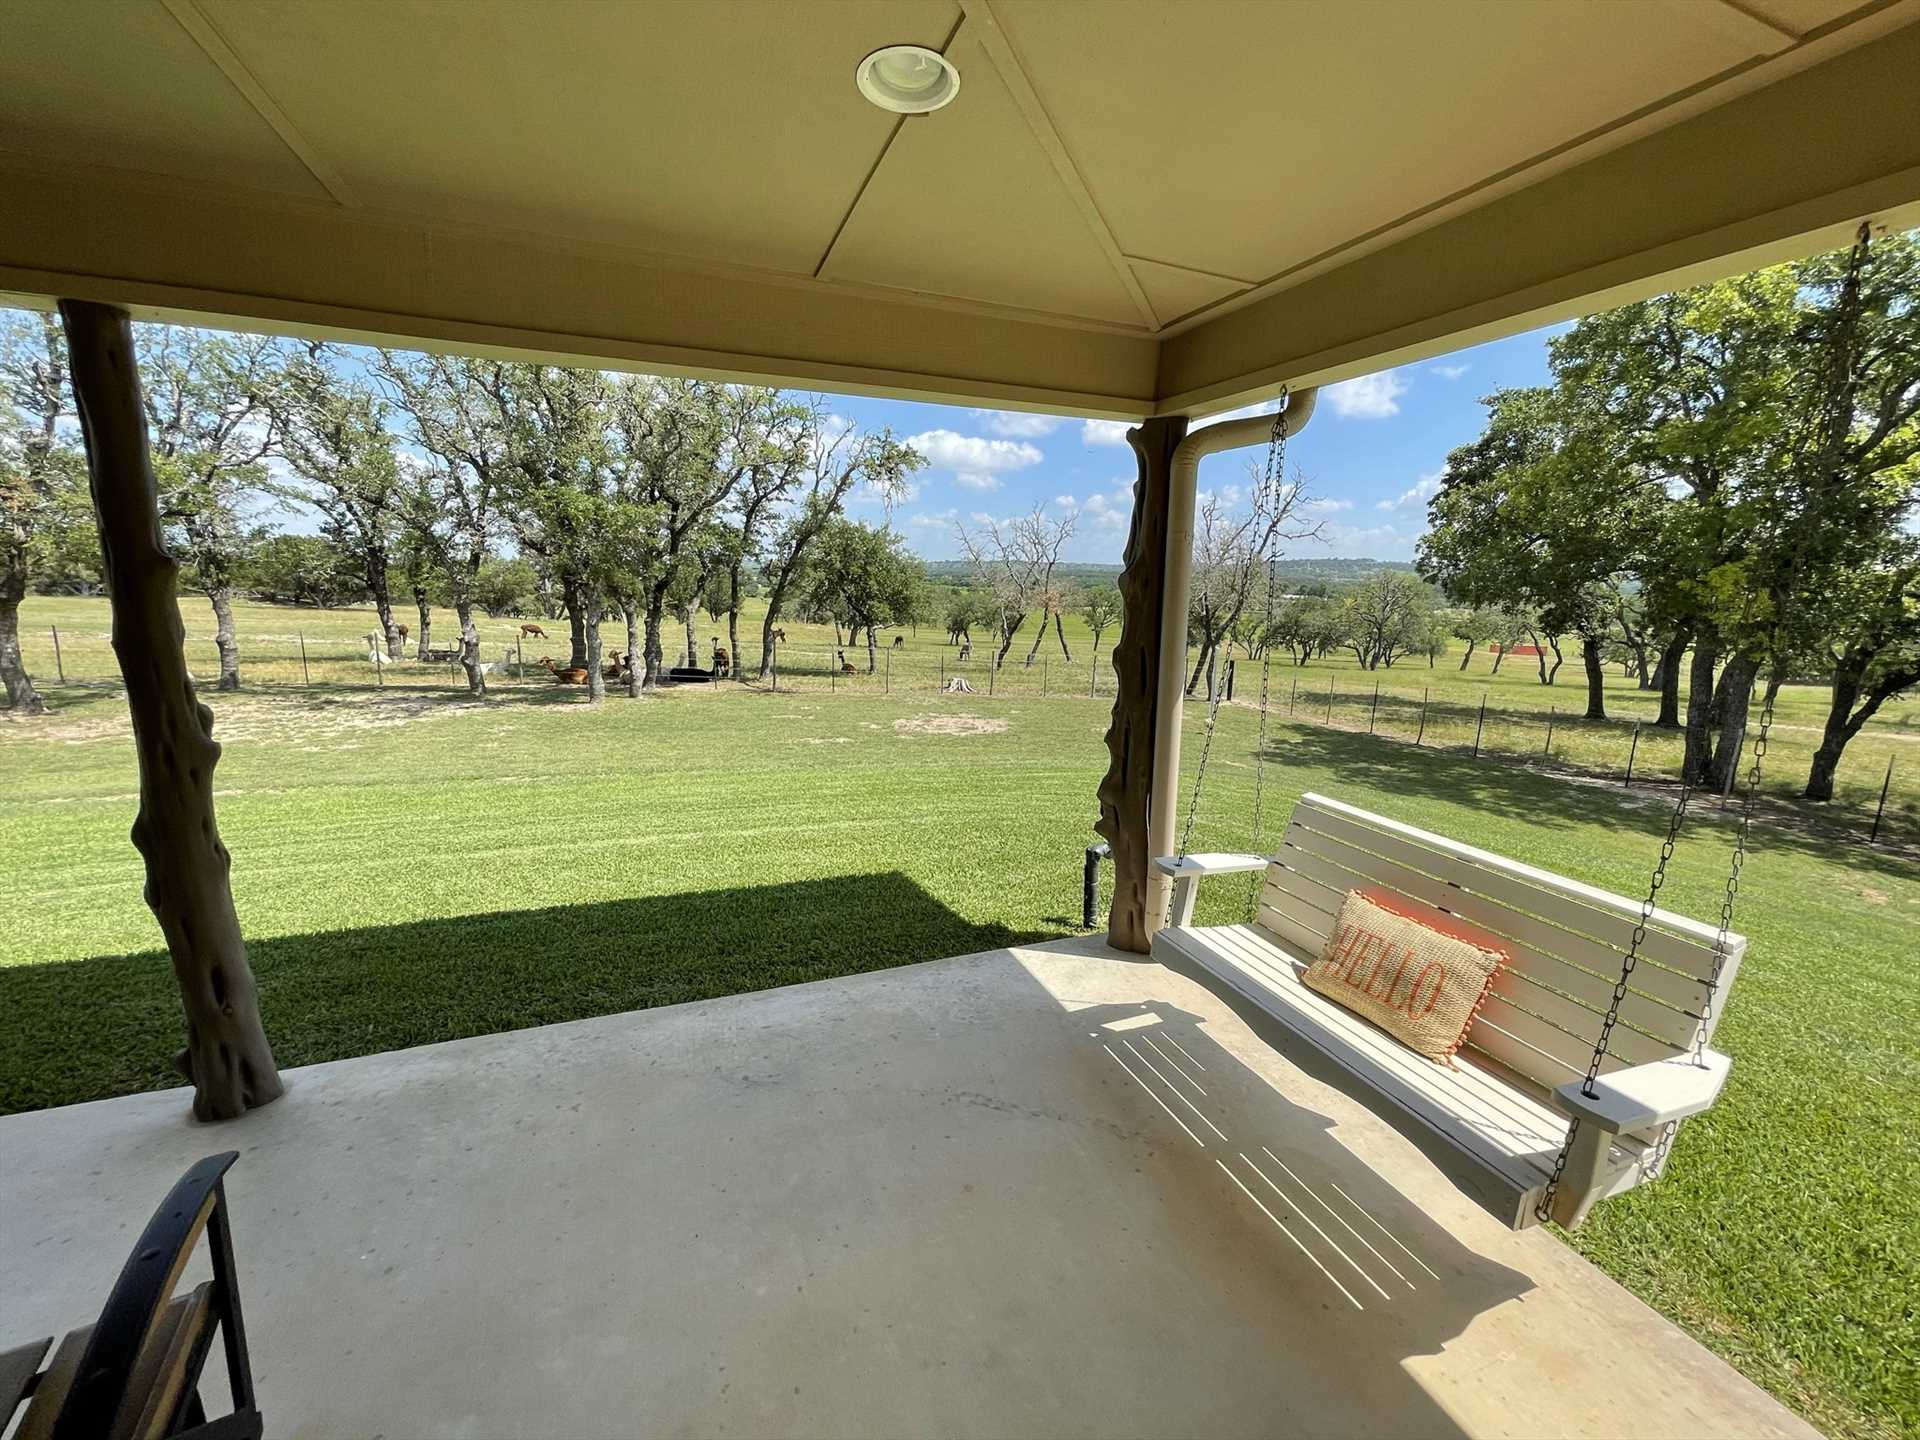 You can almost hear the gentle creak of the porch swing as refreshing Hill Country breezes waft over you.